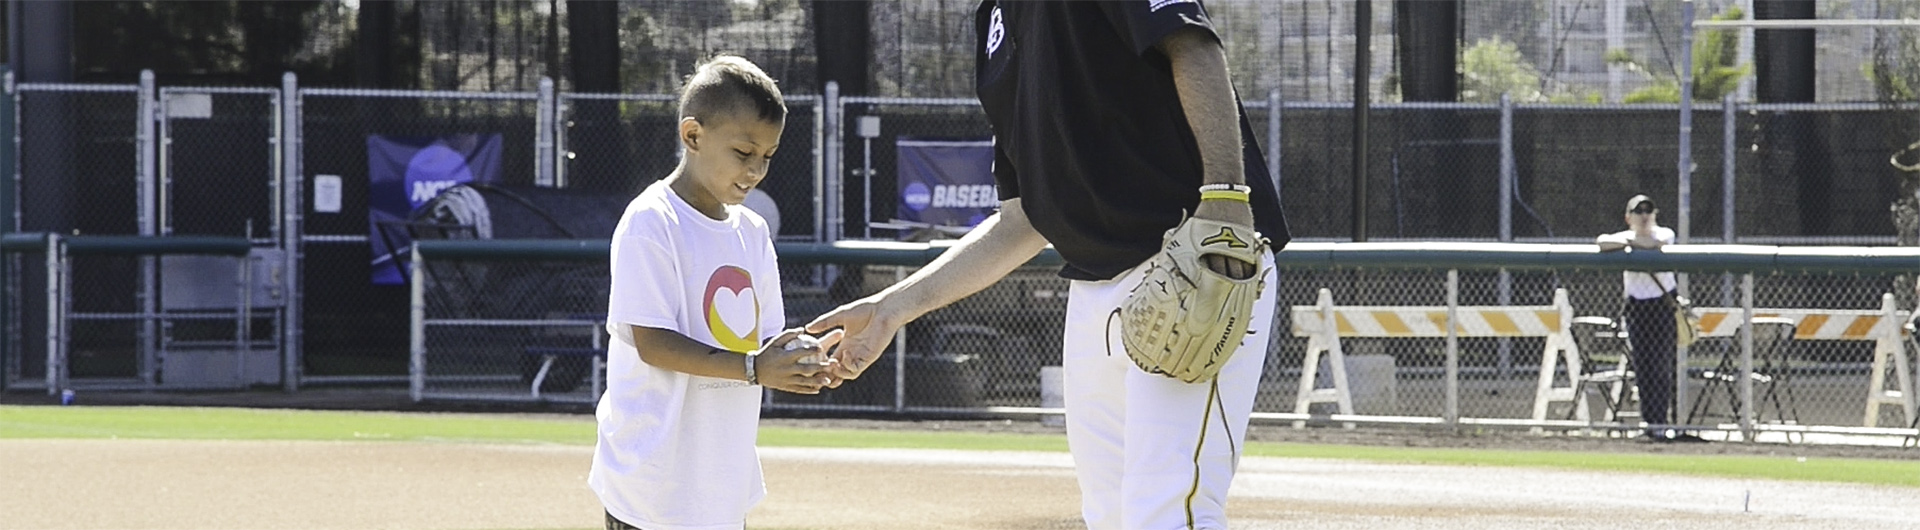 cancer kid with Dirtbags player